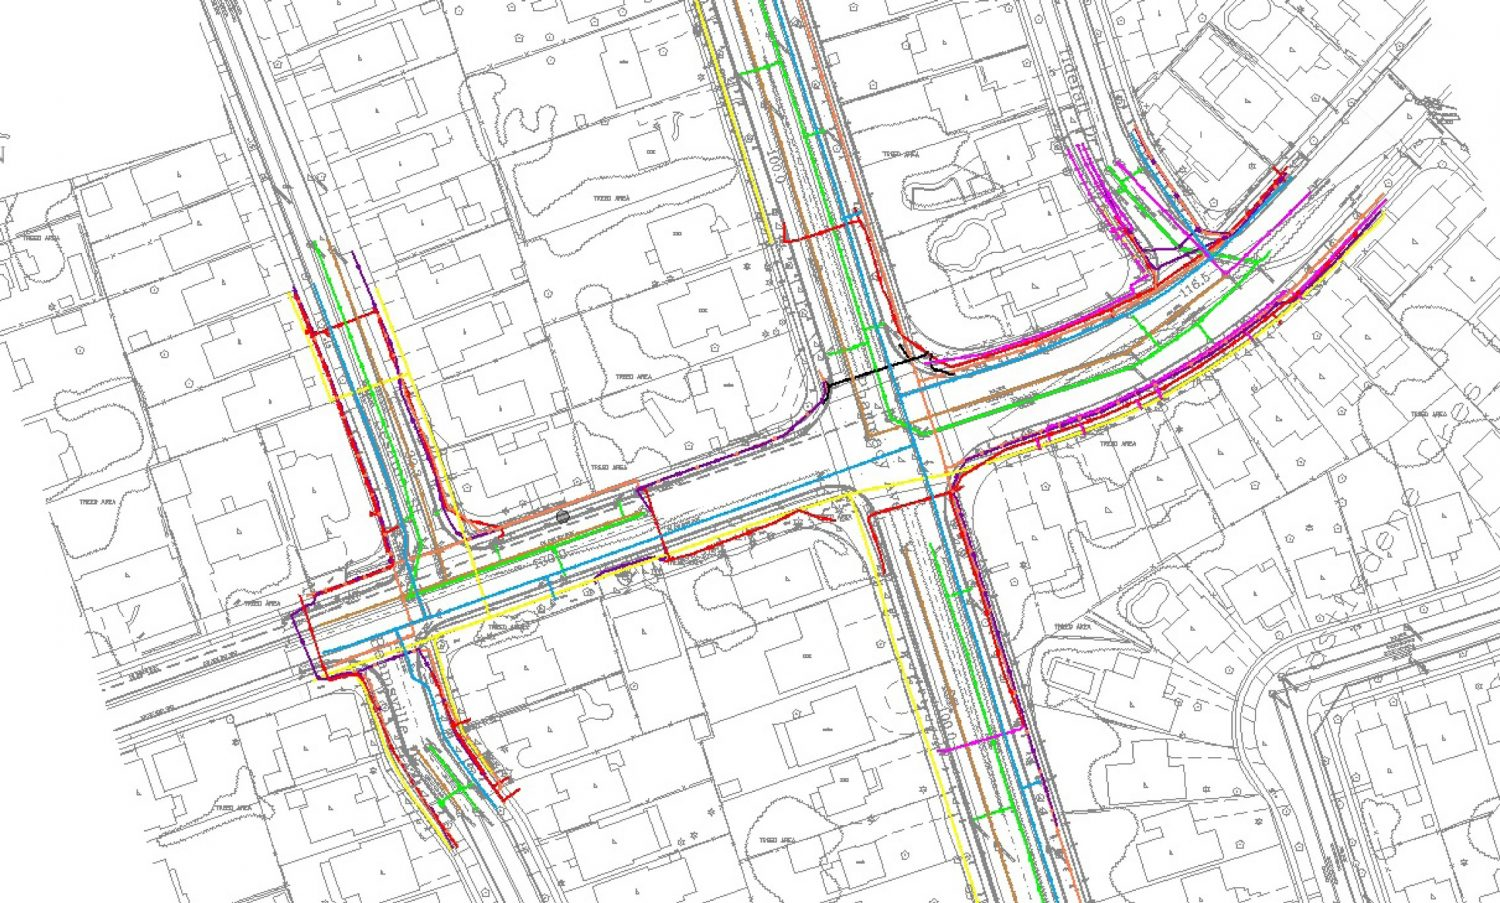 Subsurface Utility Engineering CAD map